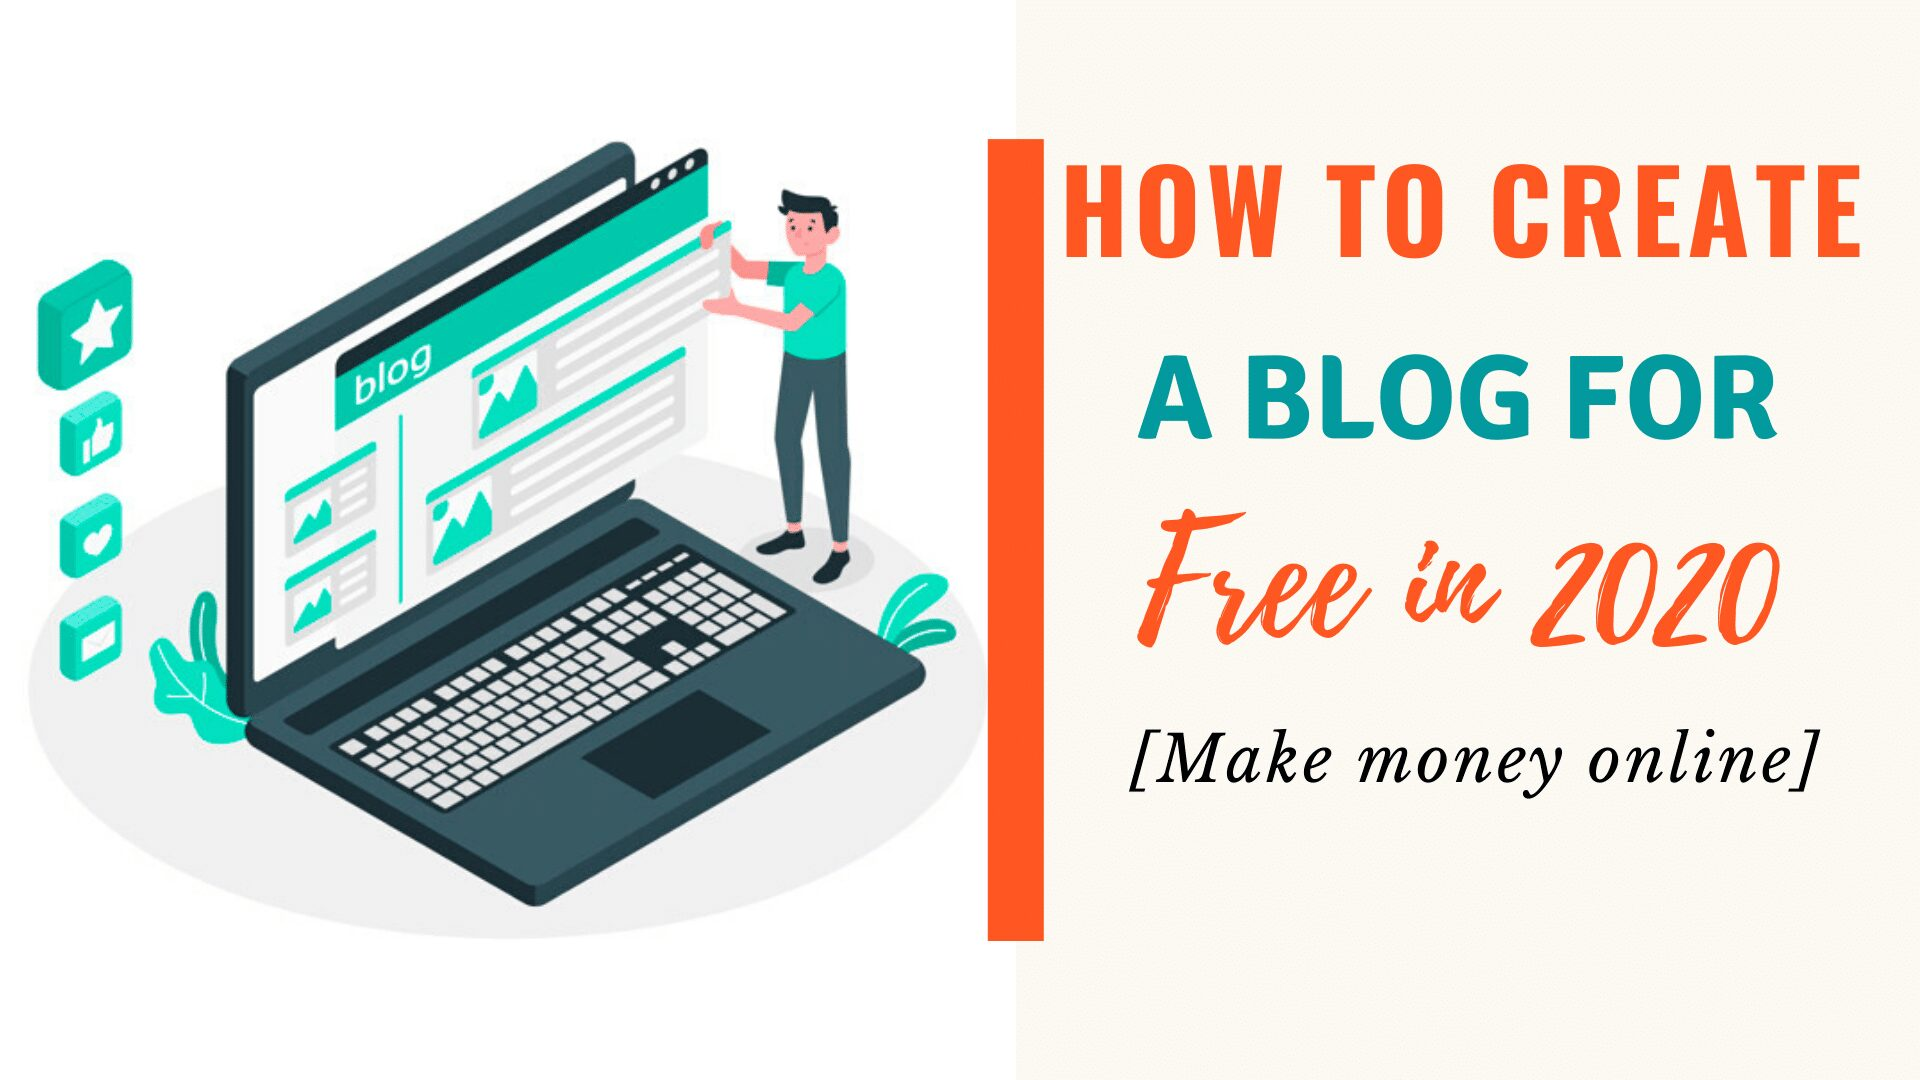 How to create a blog for free in 2021 and make money [complete guide